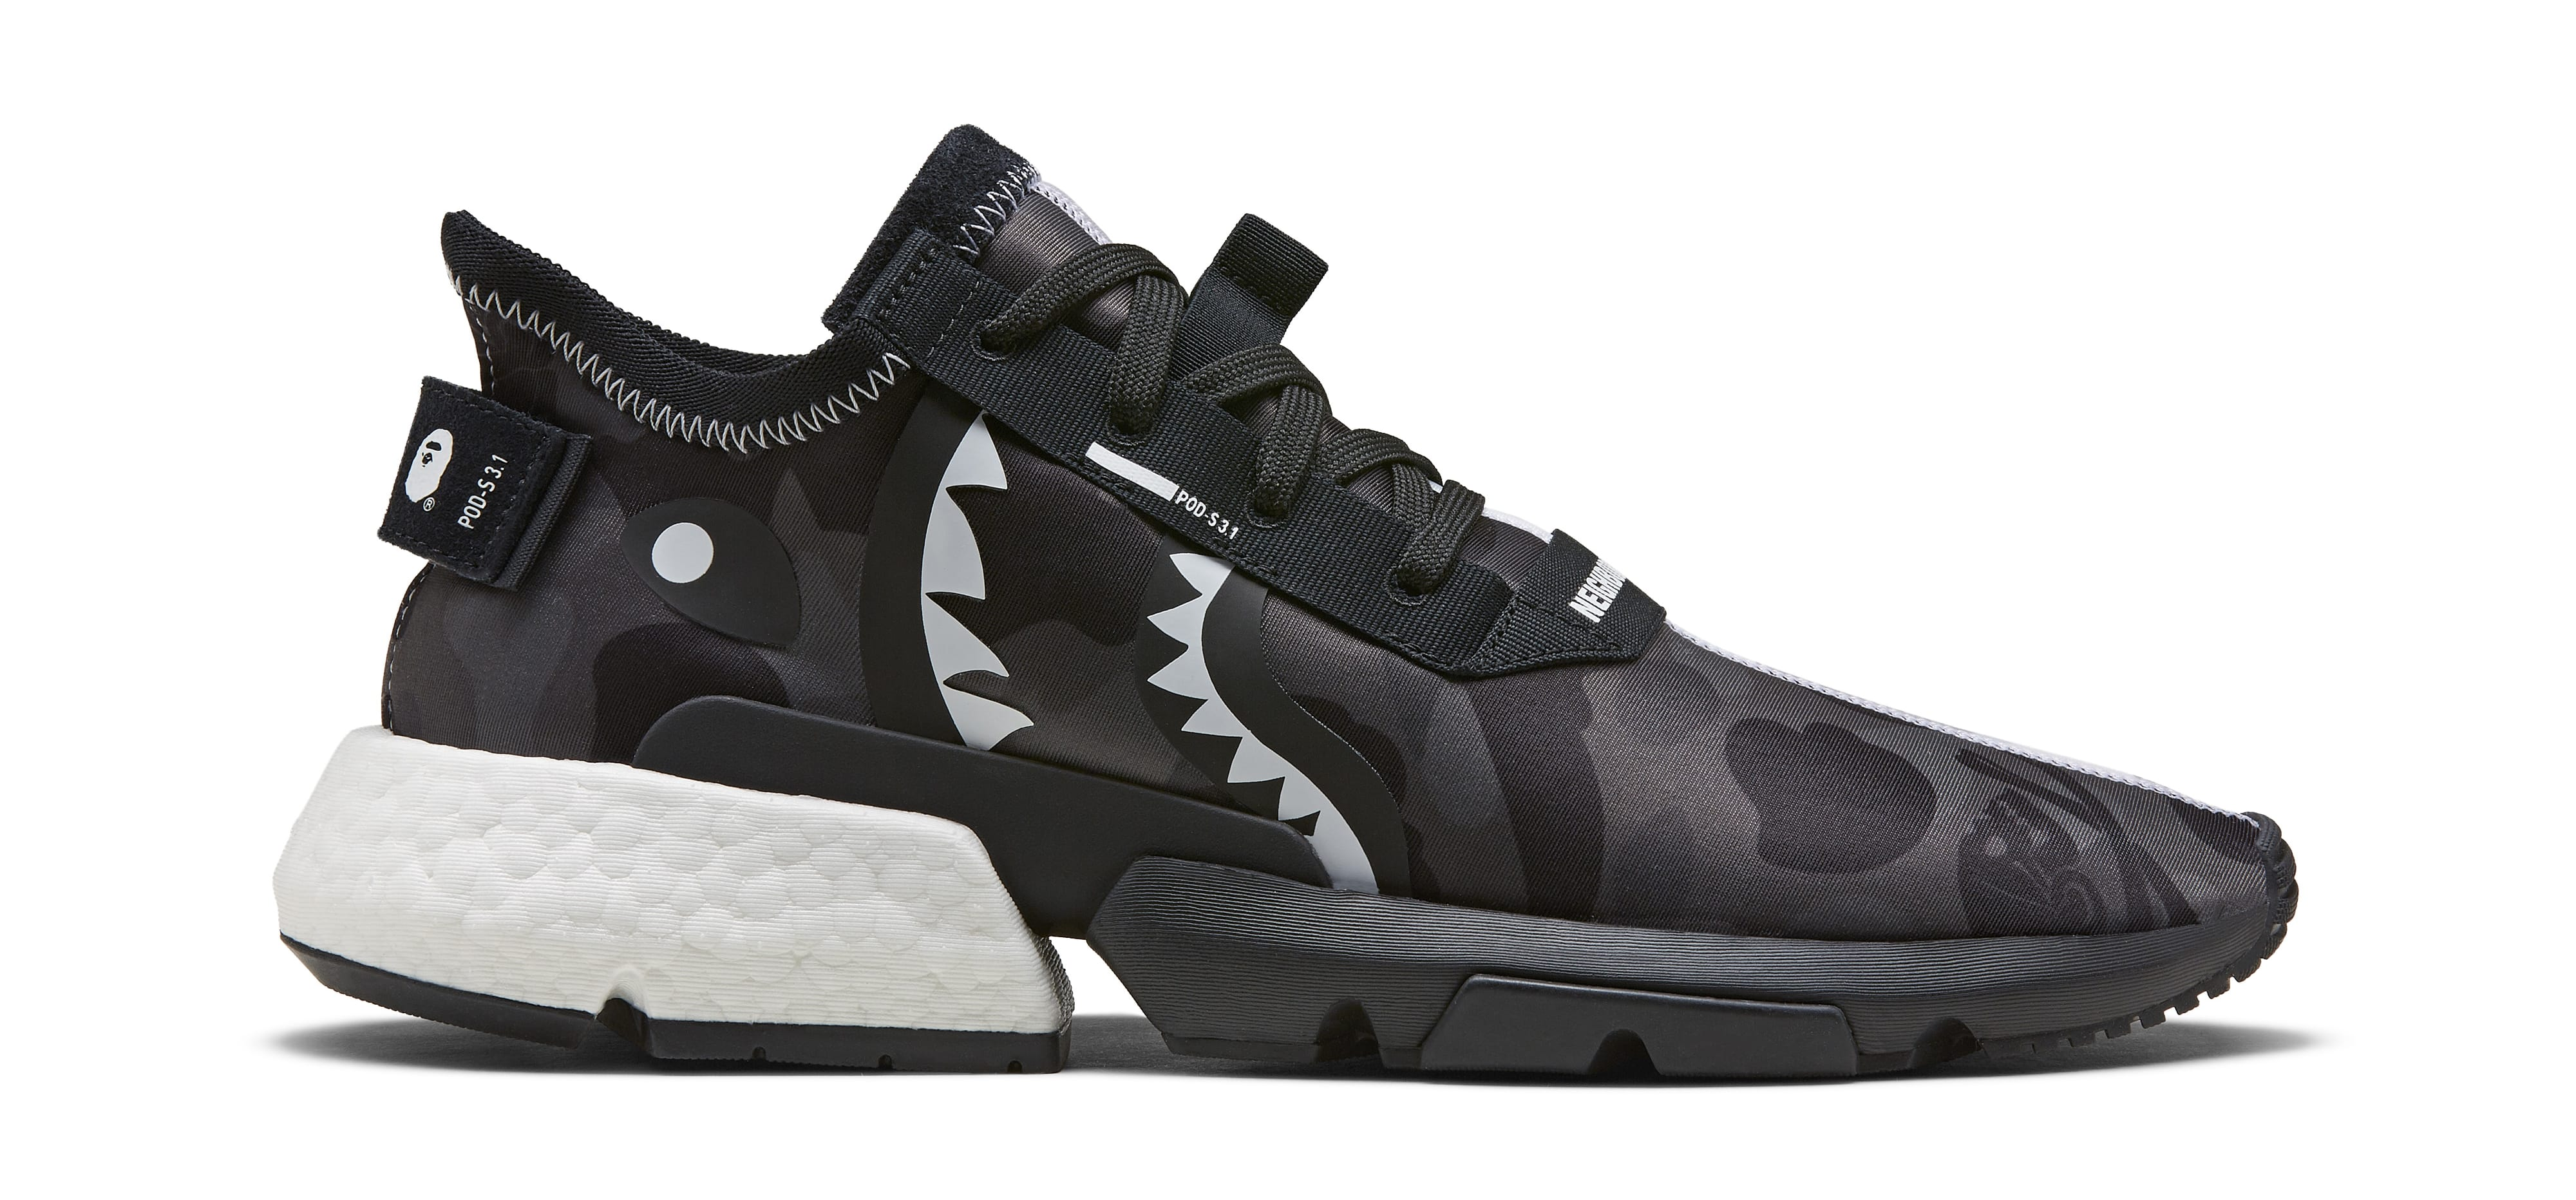 49559586f197b Bape x Neighborhood x Adidas POD 3.1 EE9431 NMD STLT EE9702 Release ...